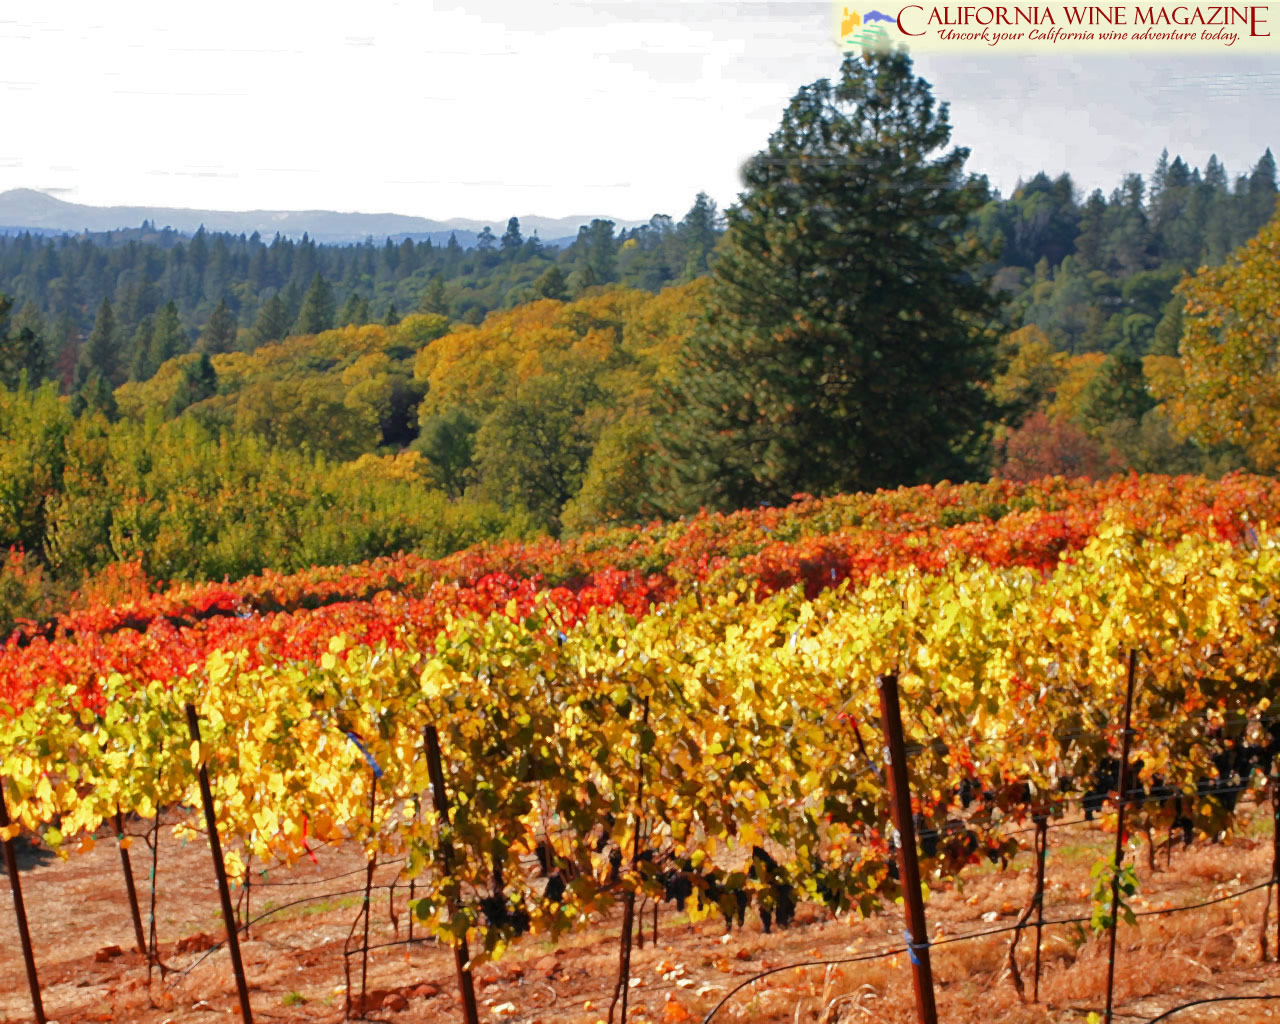 California Wine Magazine   Wallpaper 1280x1024